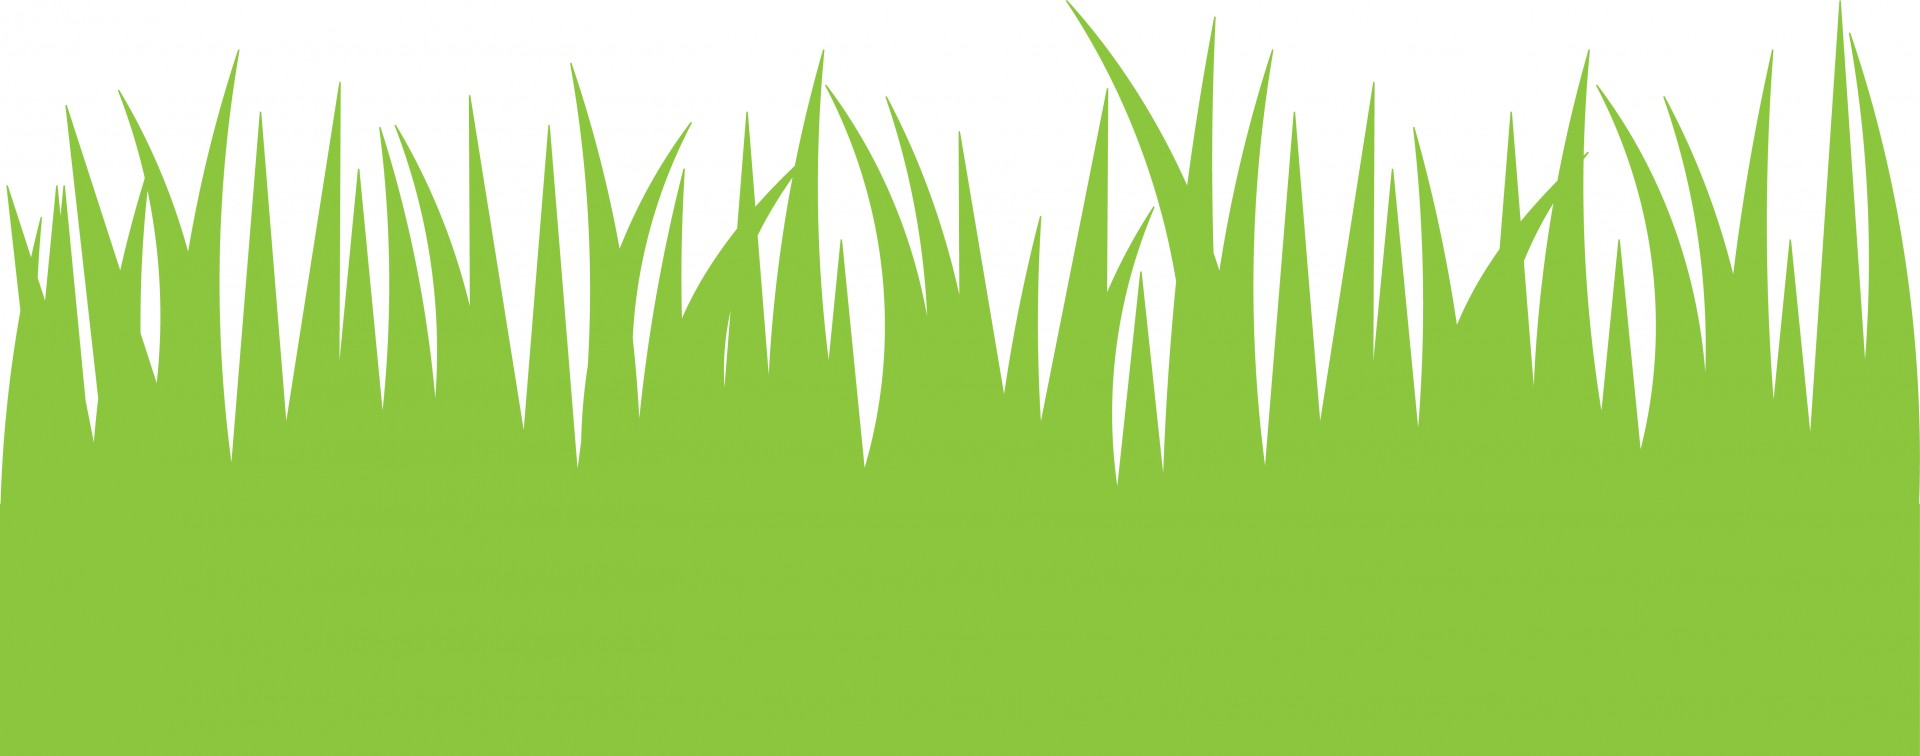 black and white stock Grass clipart. Green genesee fuel heating